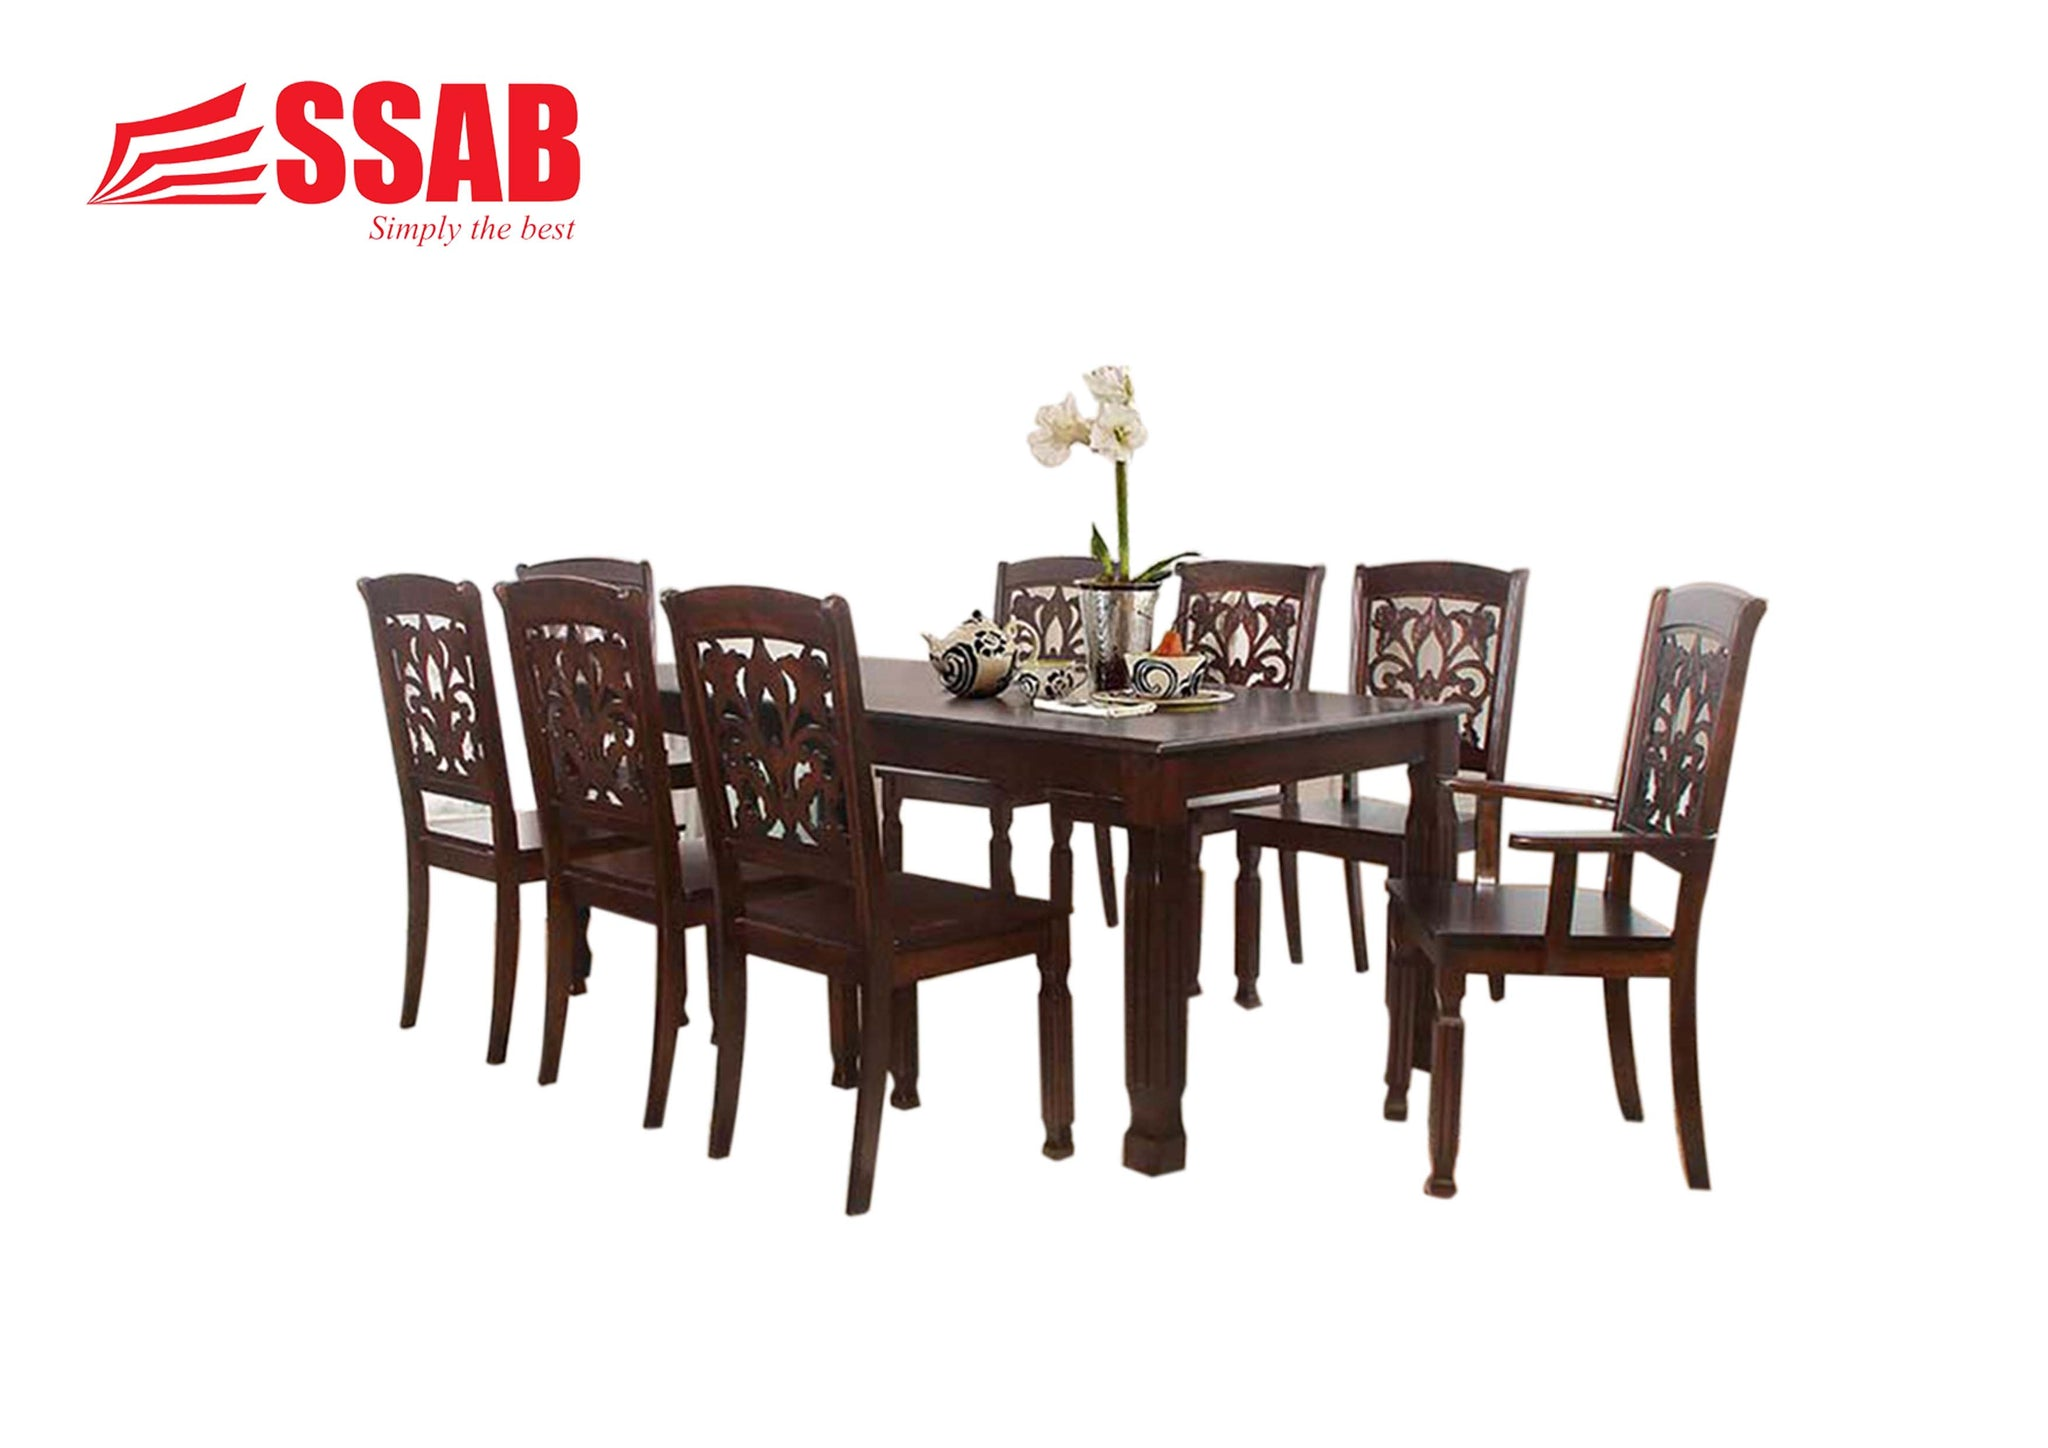 CANSSAB Fathia 8 Seater Dining Set